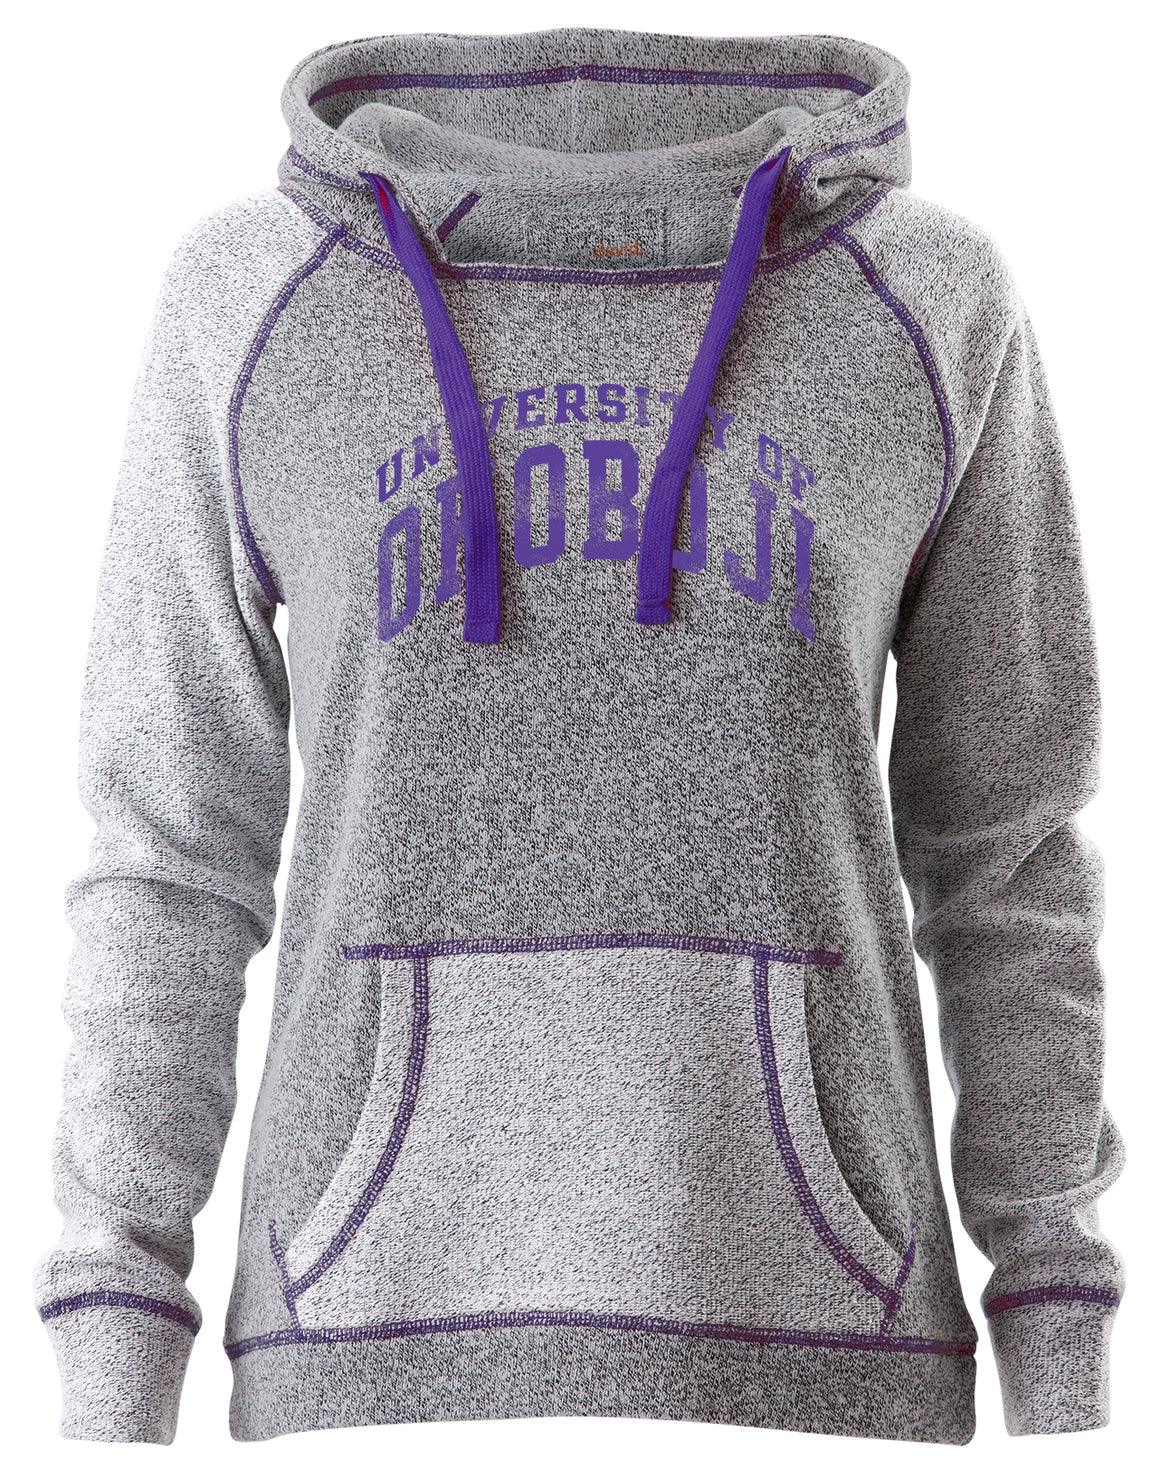 Ladies Purple Trim Horizon Hood U of O Crest